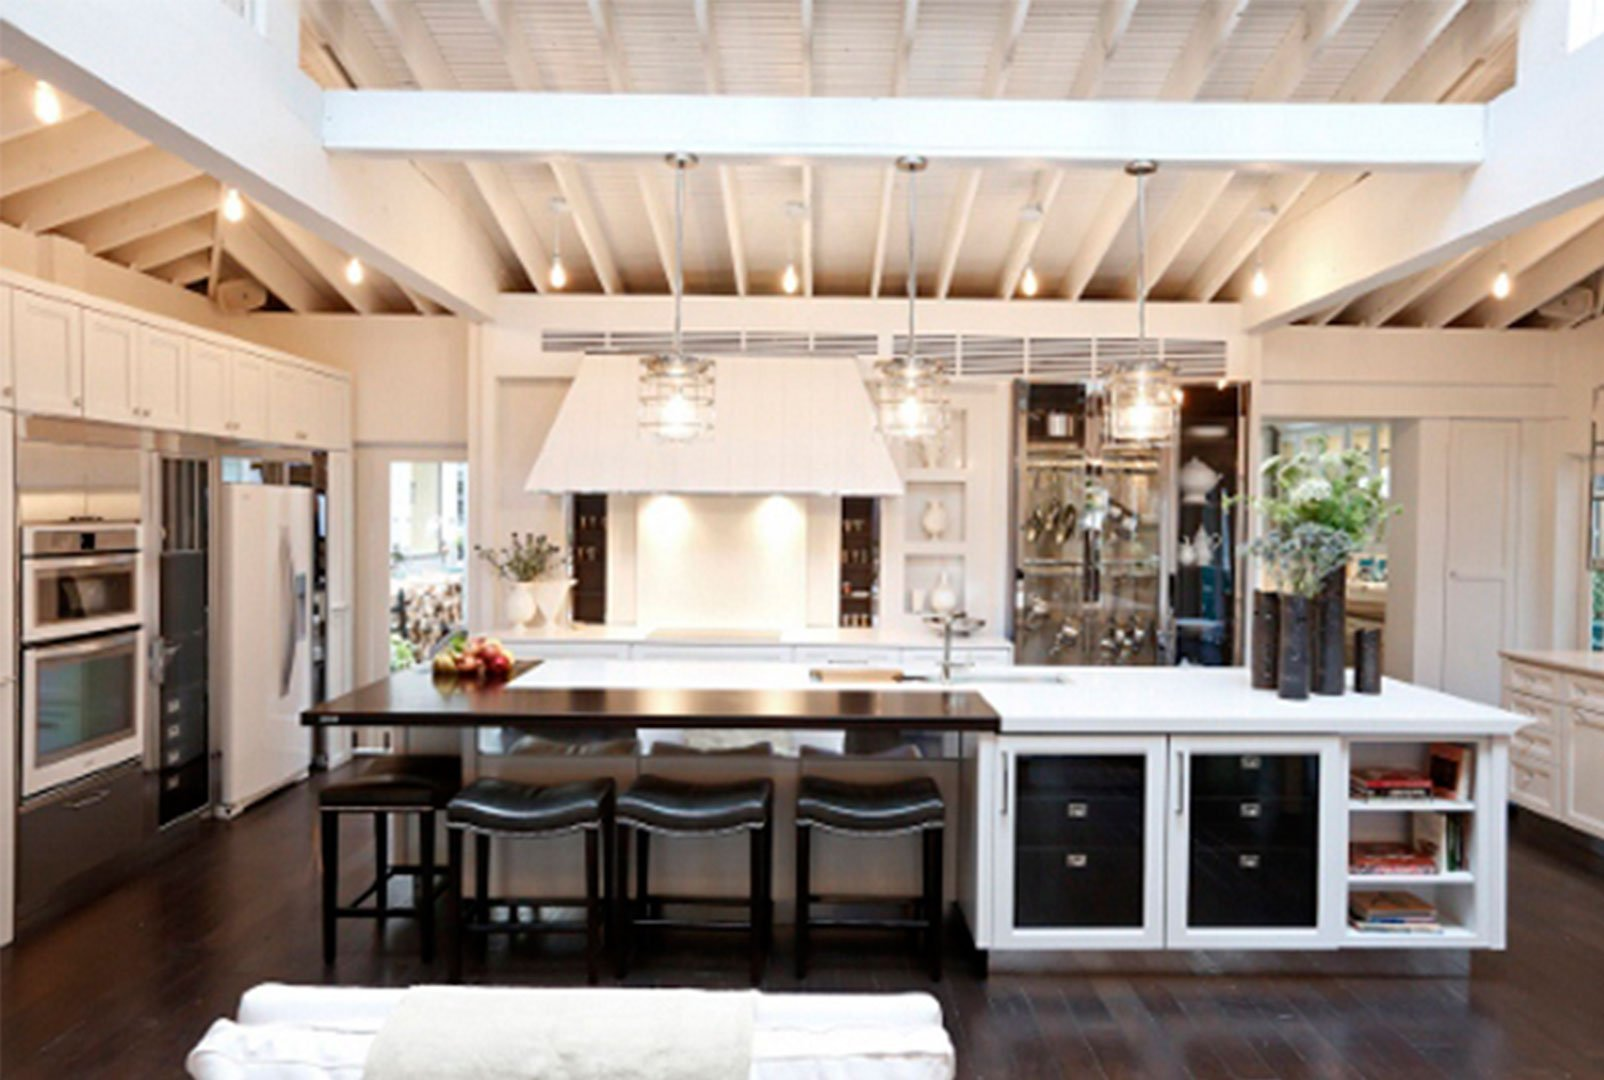 Architecture Design Trends 2014 the old and new trends in american architecture